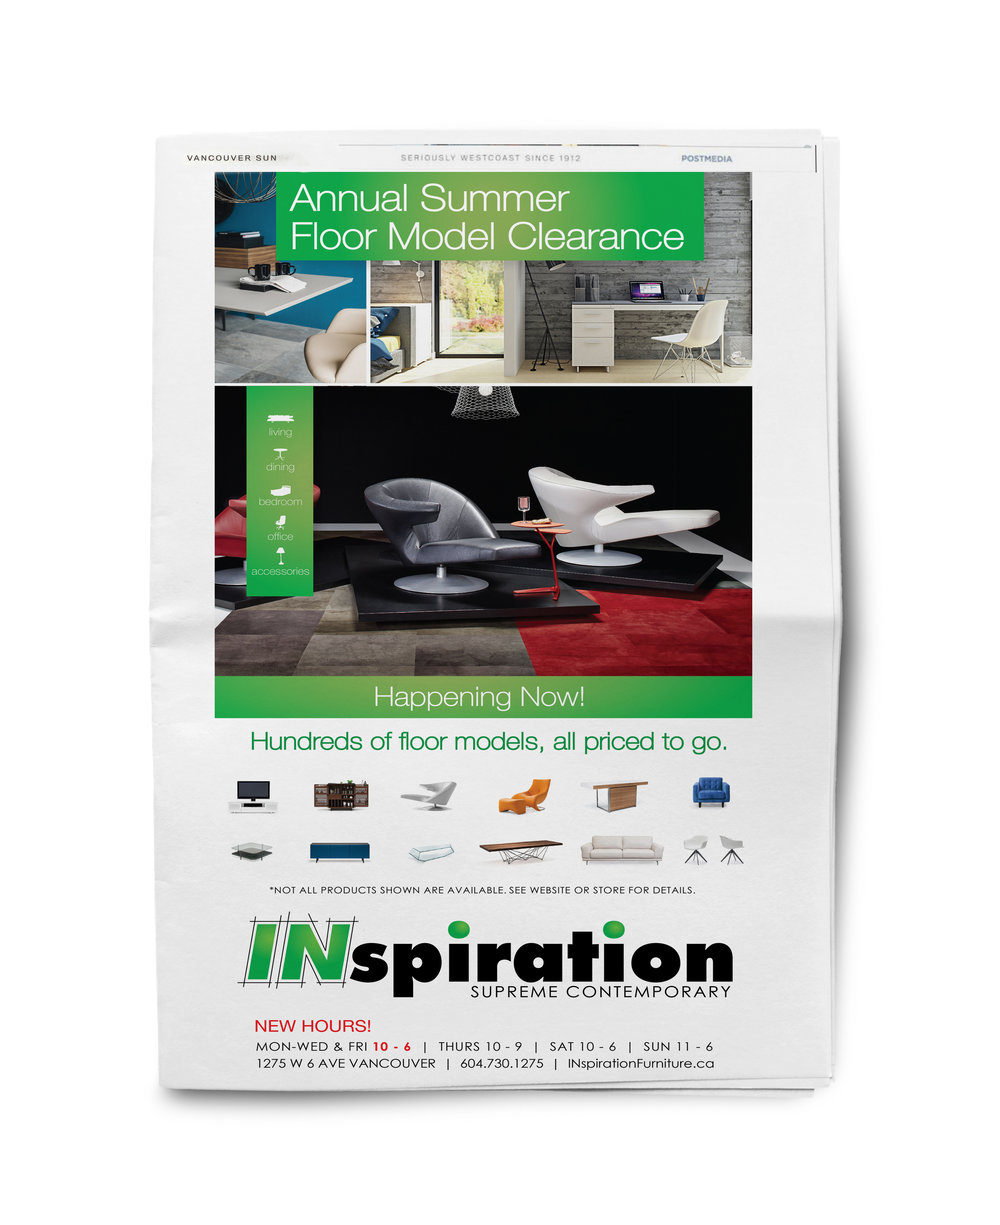 INspiration_Vancouver_Newspaper39.jpg